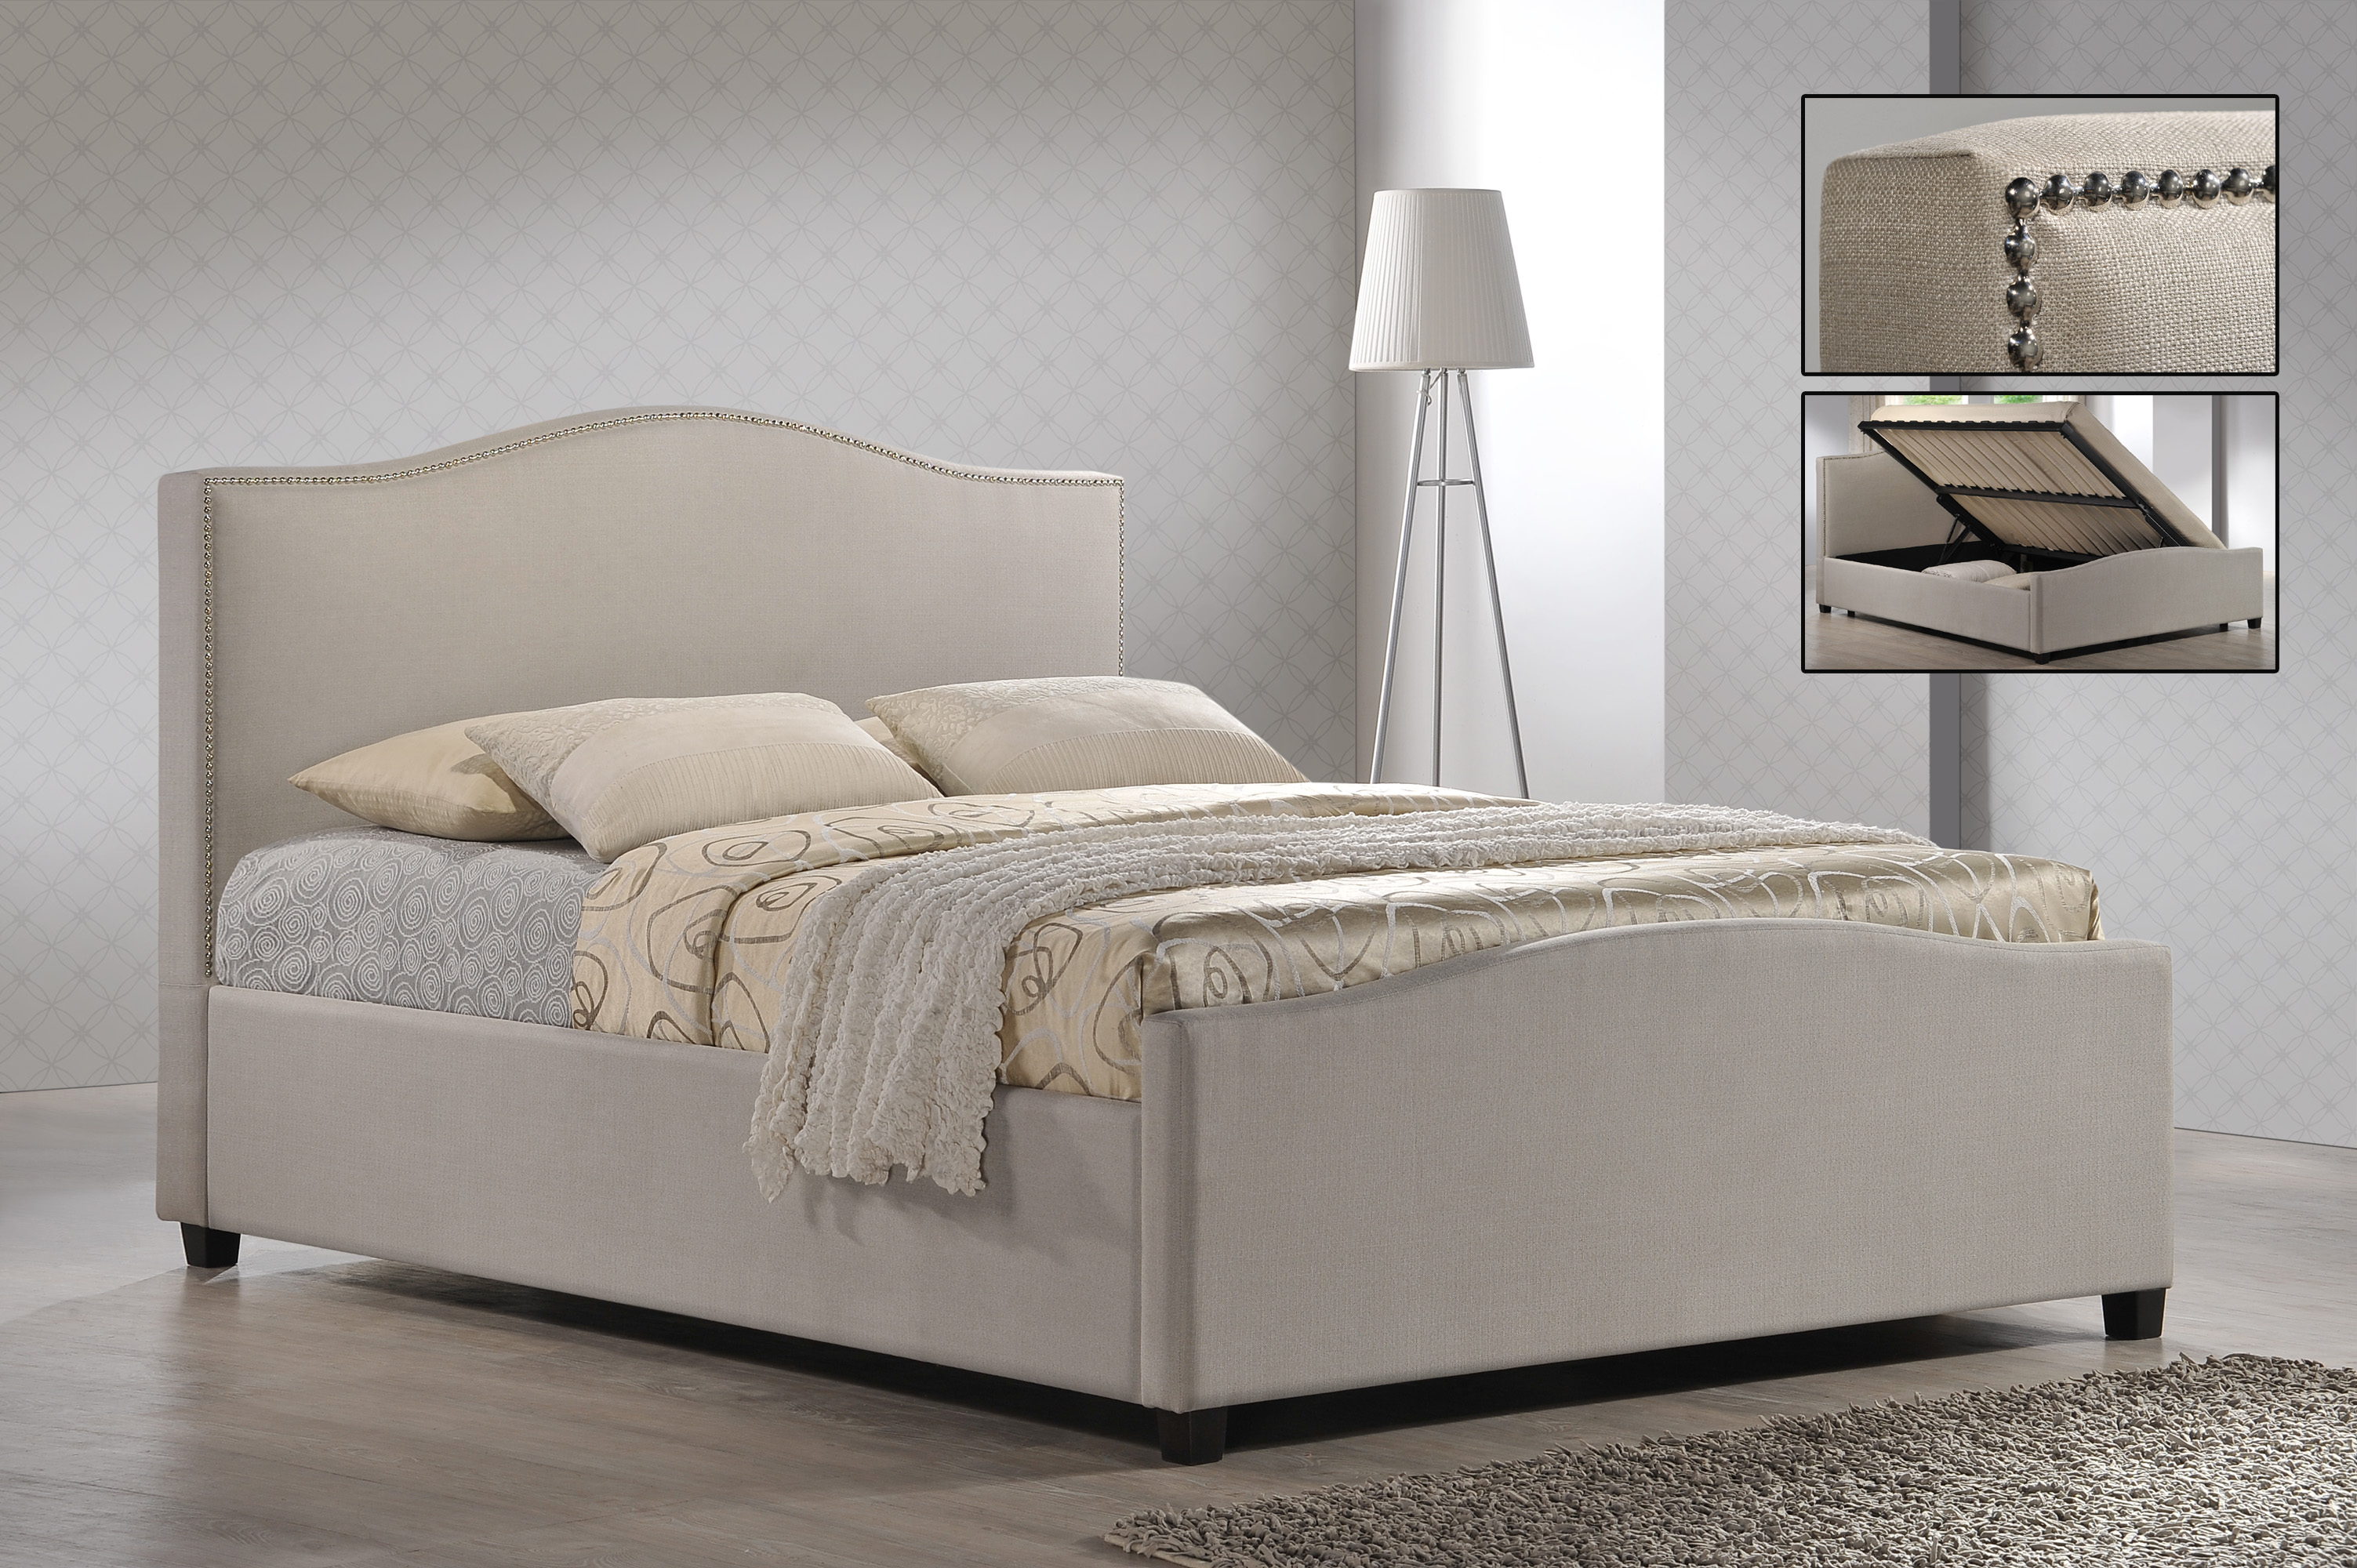 Fine Chrome Studded Sand Fabric Side Ottoman Style Bed Frame Double 4Ft 6 Free Next Day Delivery Gmtry Best Dining Table And Chair Ideas Images Gmtryco